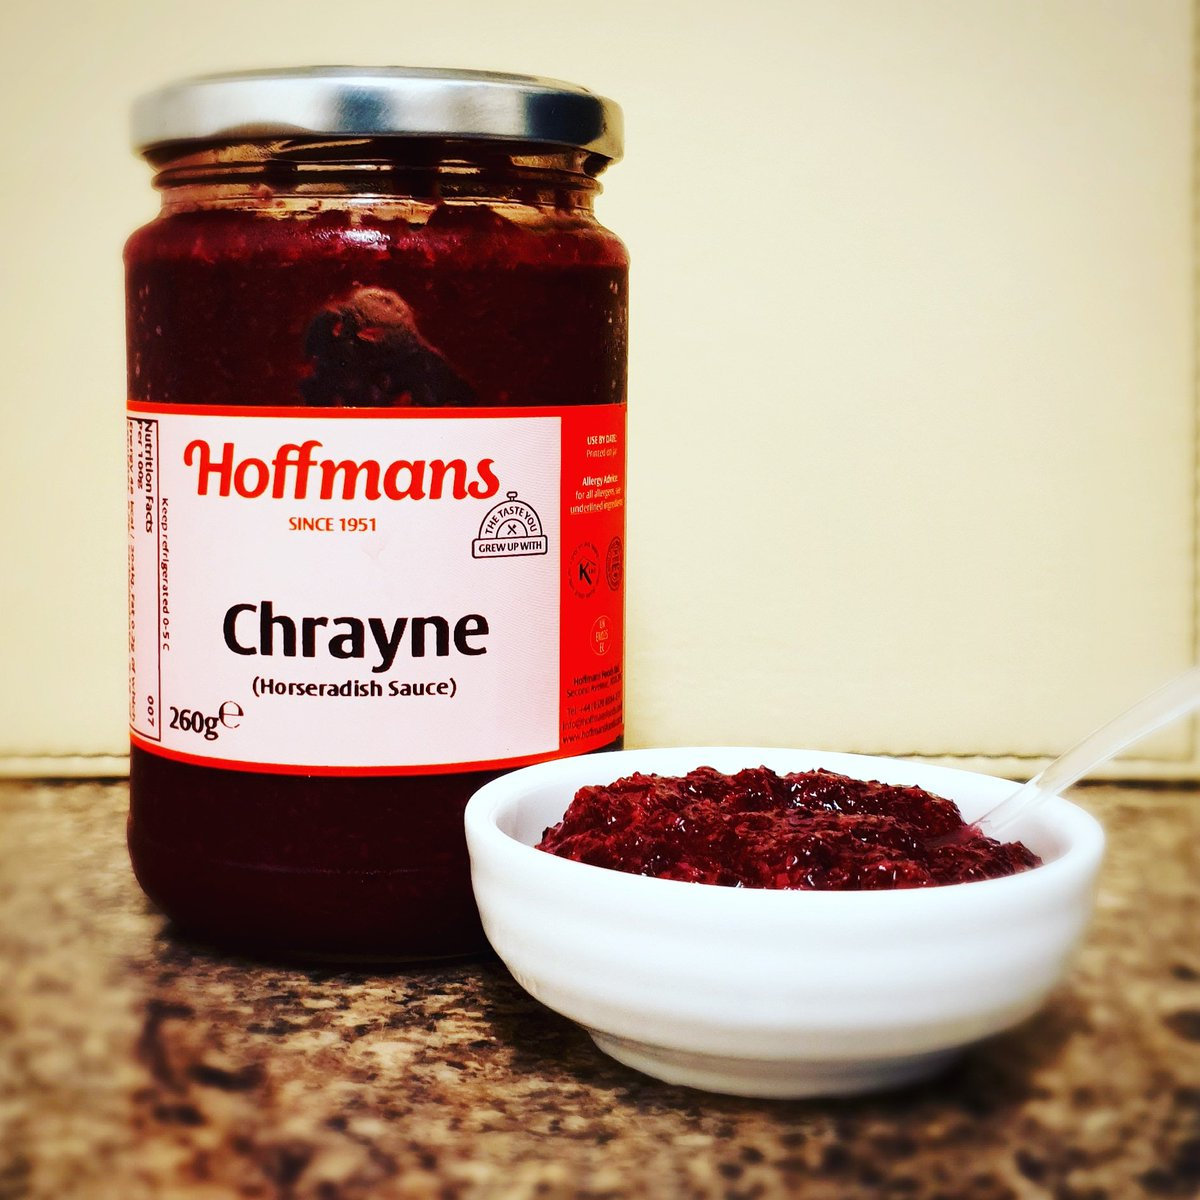 Chrayne! A classic in every Jewish home, available at your local kosher supermarkets.  #hoffmansfoods #since1951 #thetasteyougrewupwith #chrayne #horseraddish #sauce #kosher #kosherfood #food #instagram #foodie #Hoffmans #Kosher https://t.co/sYCCT7pYWN